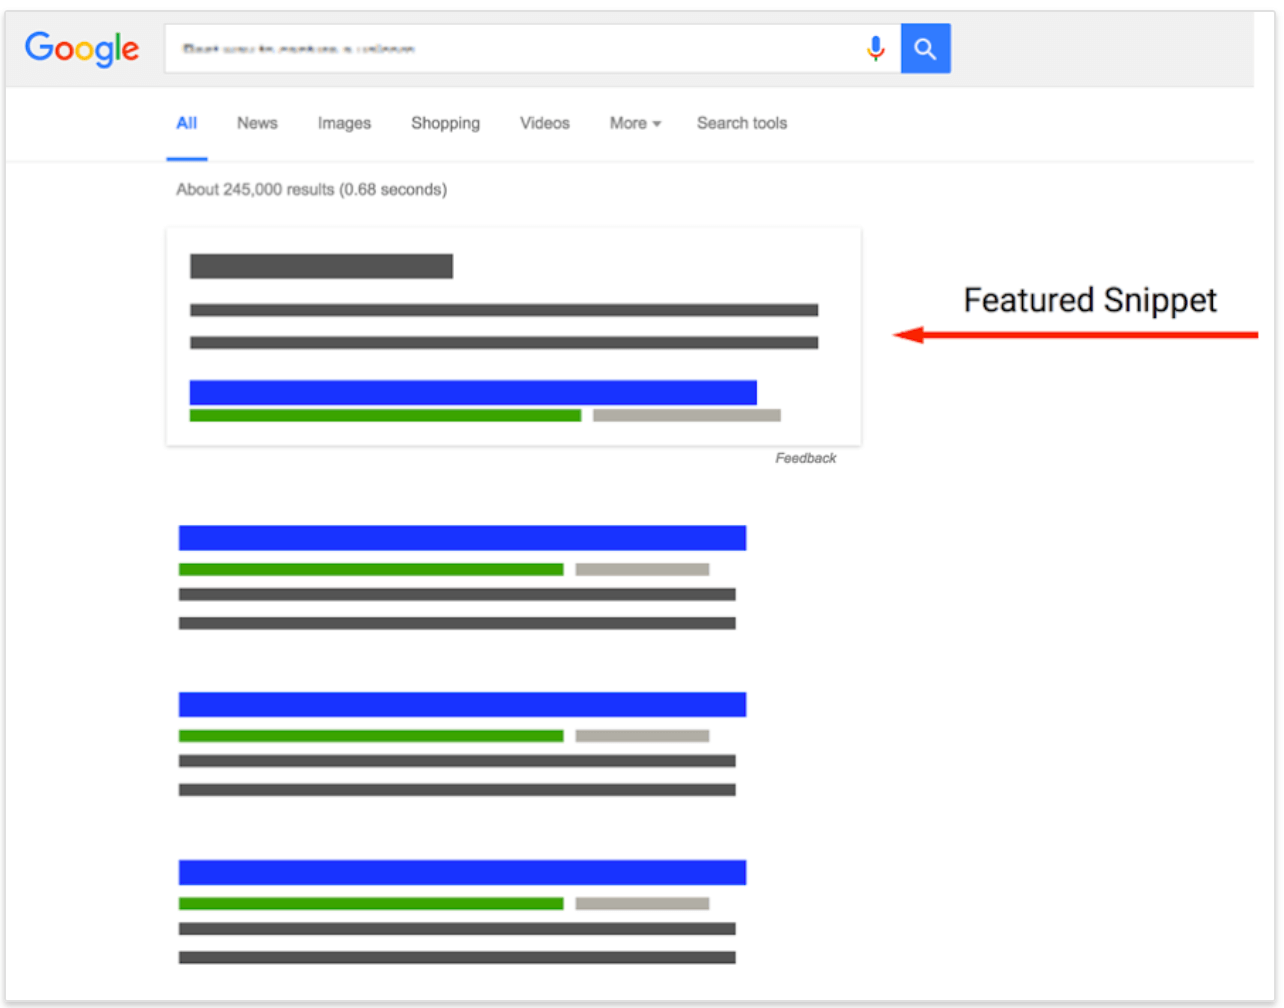 Google's Featured Snippet Example